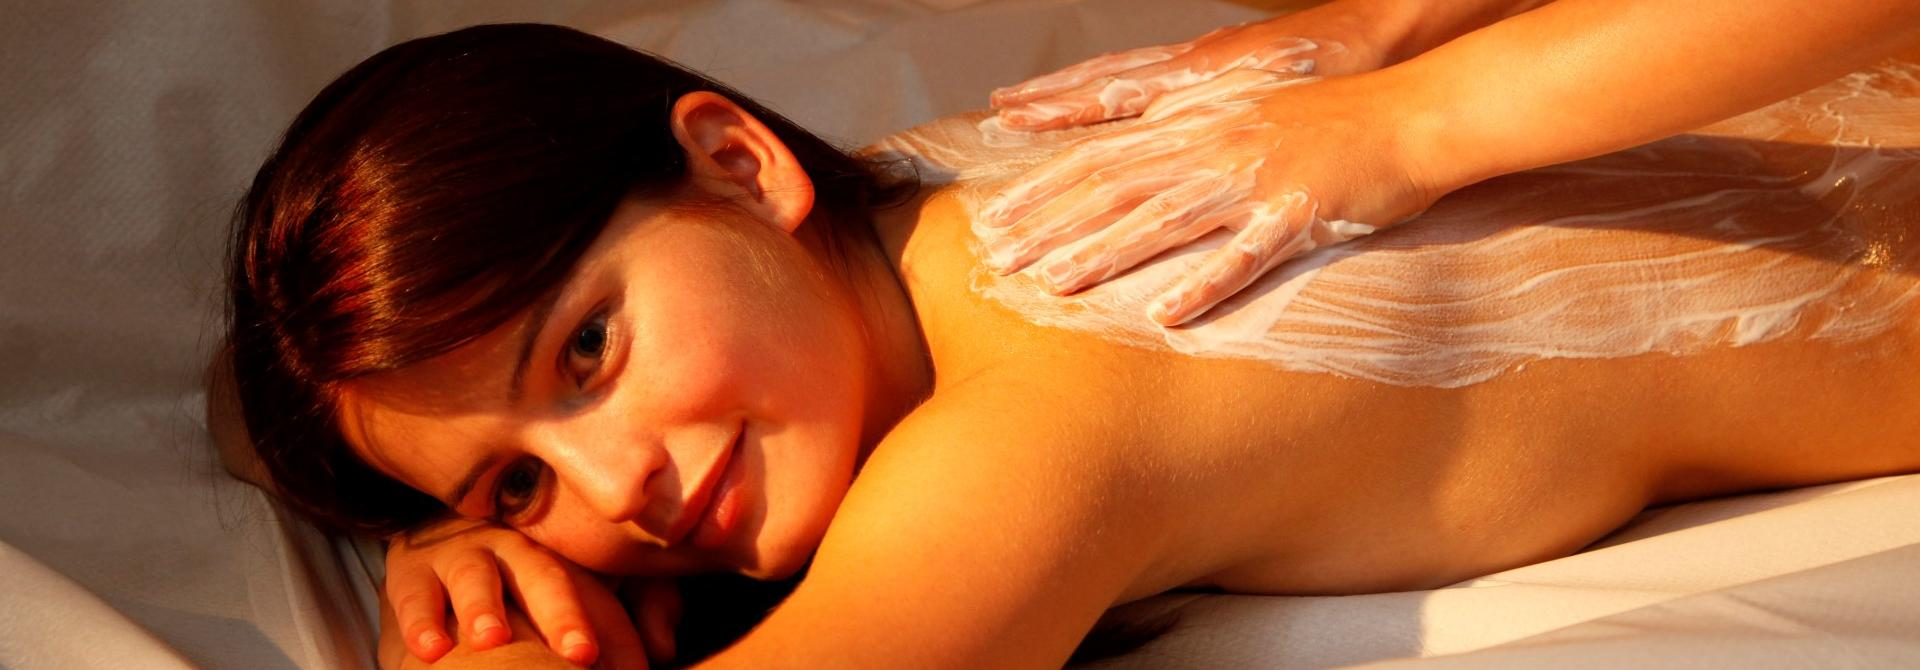 beauty-behandlung-massage